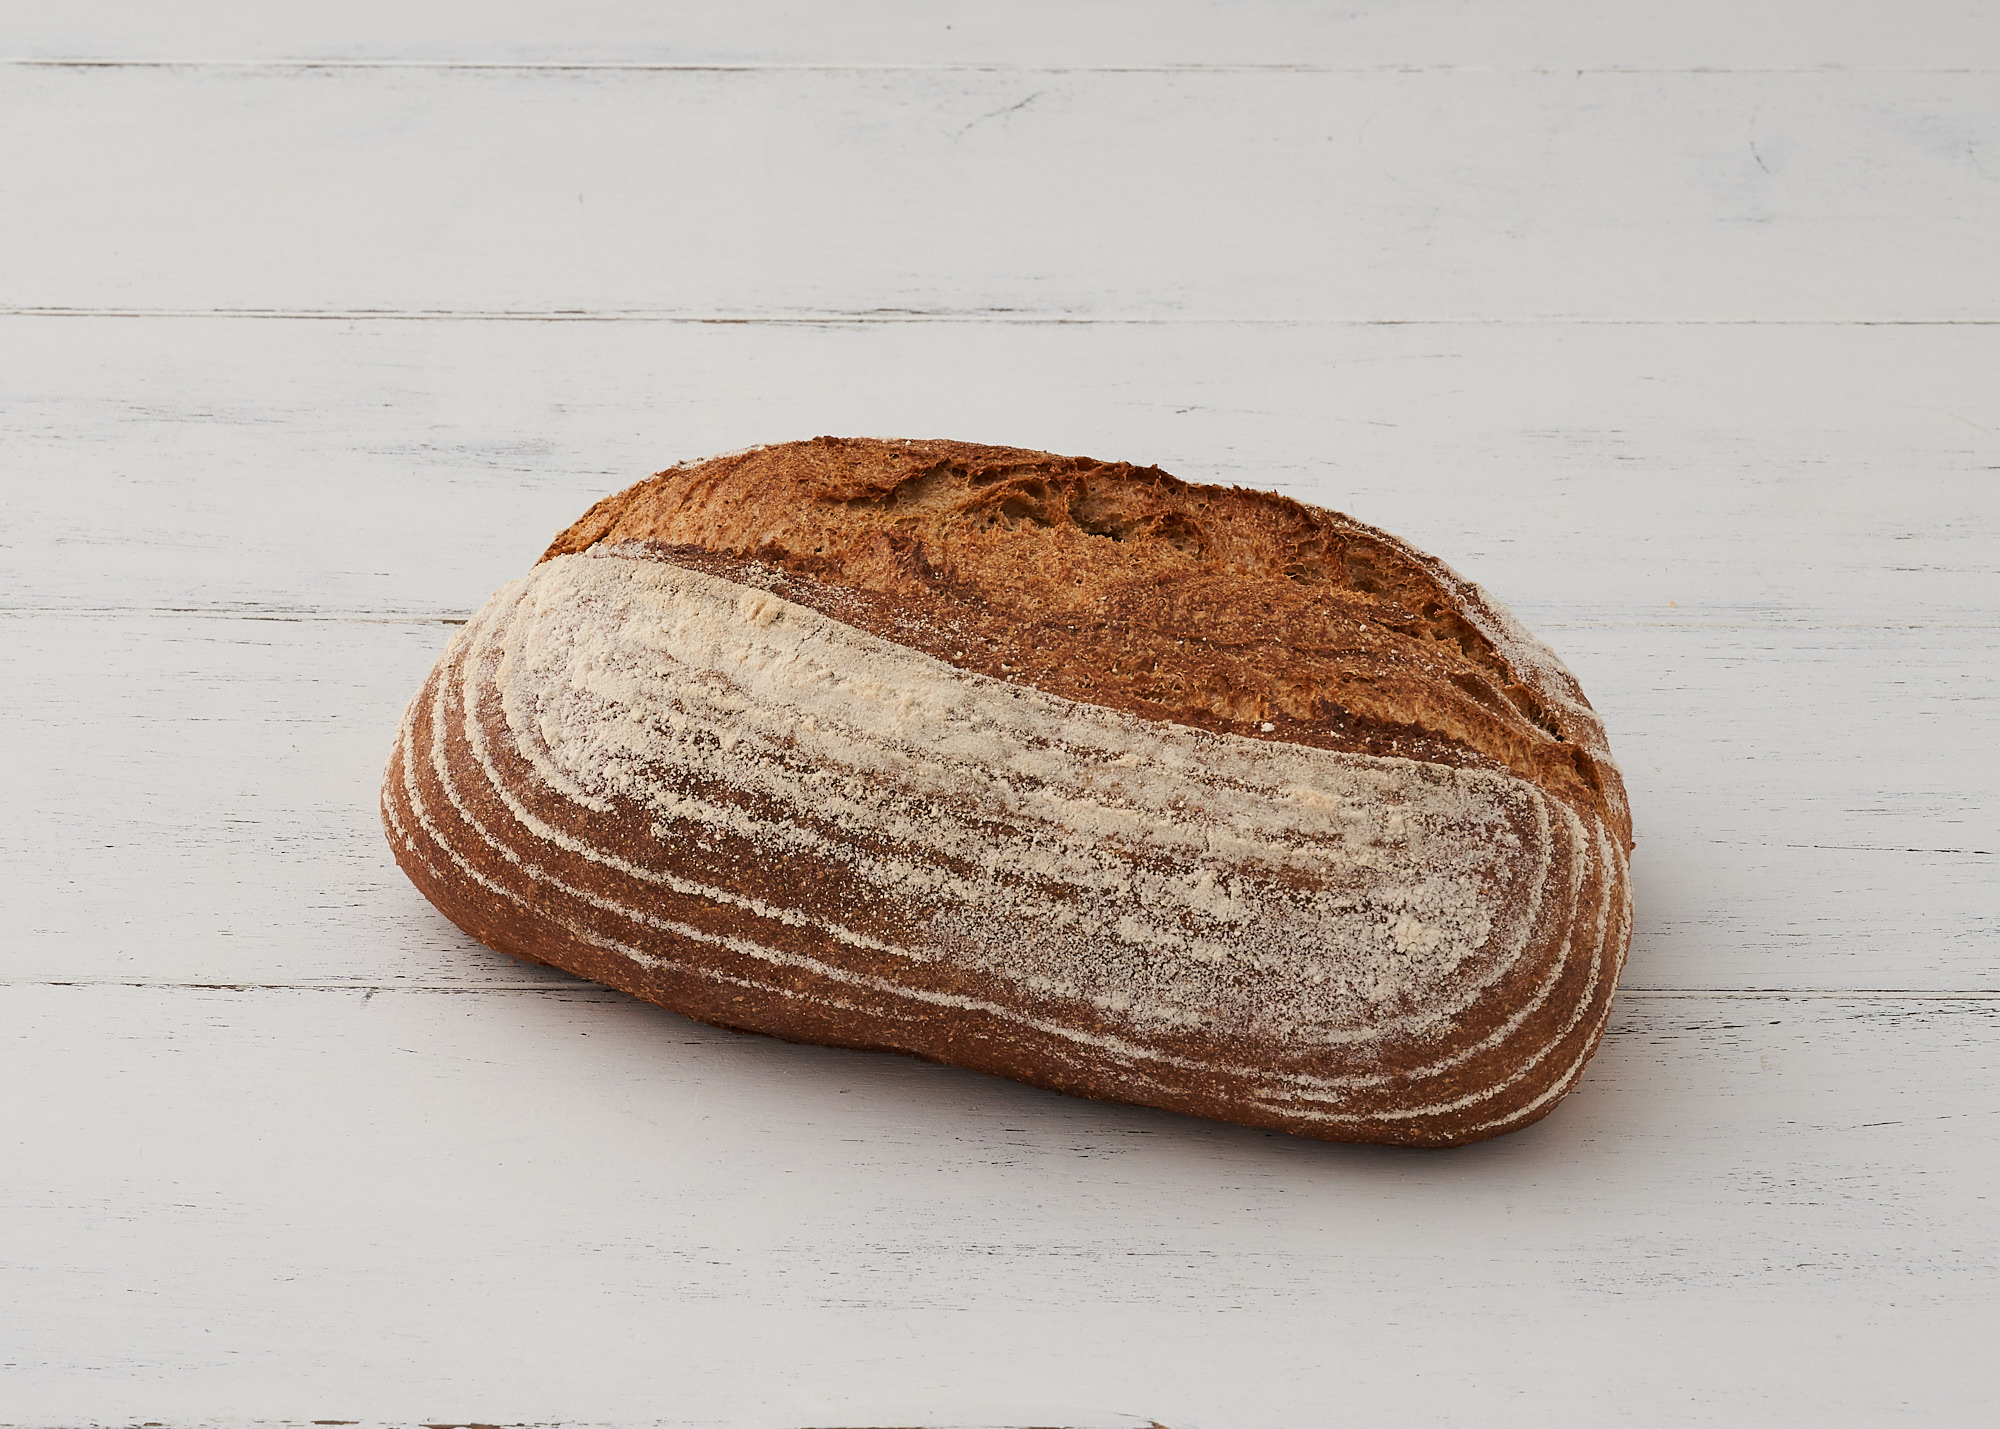 Sourdough - Our long fermented Sourdough combines White, wholemeal and rye flours with our rye sourdough starter to create a rustic loaf with a lovely sour flavour